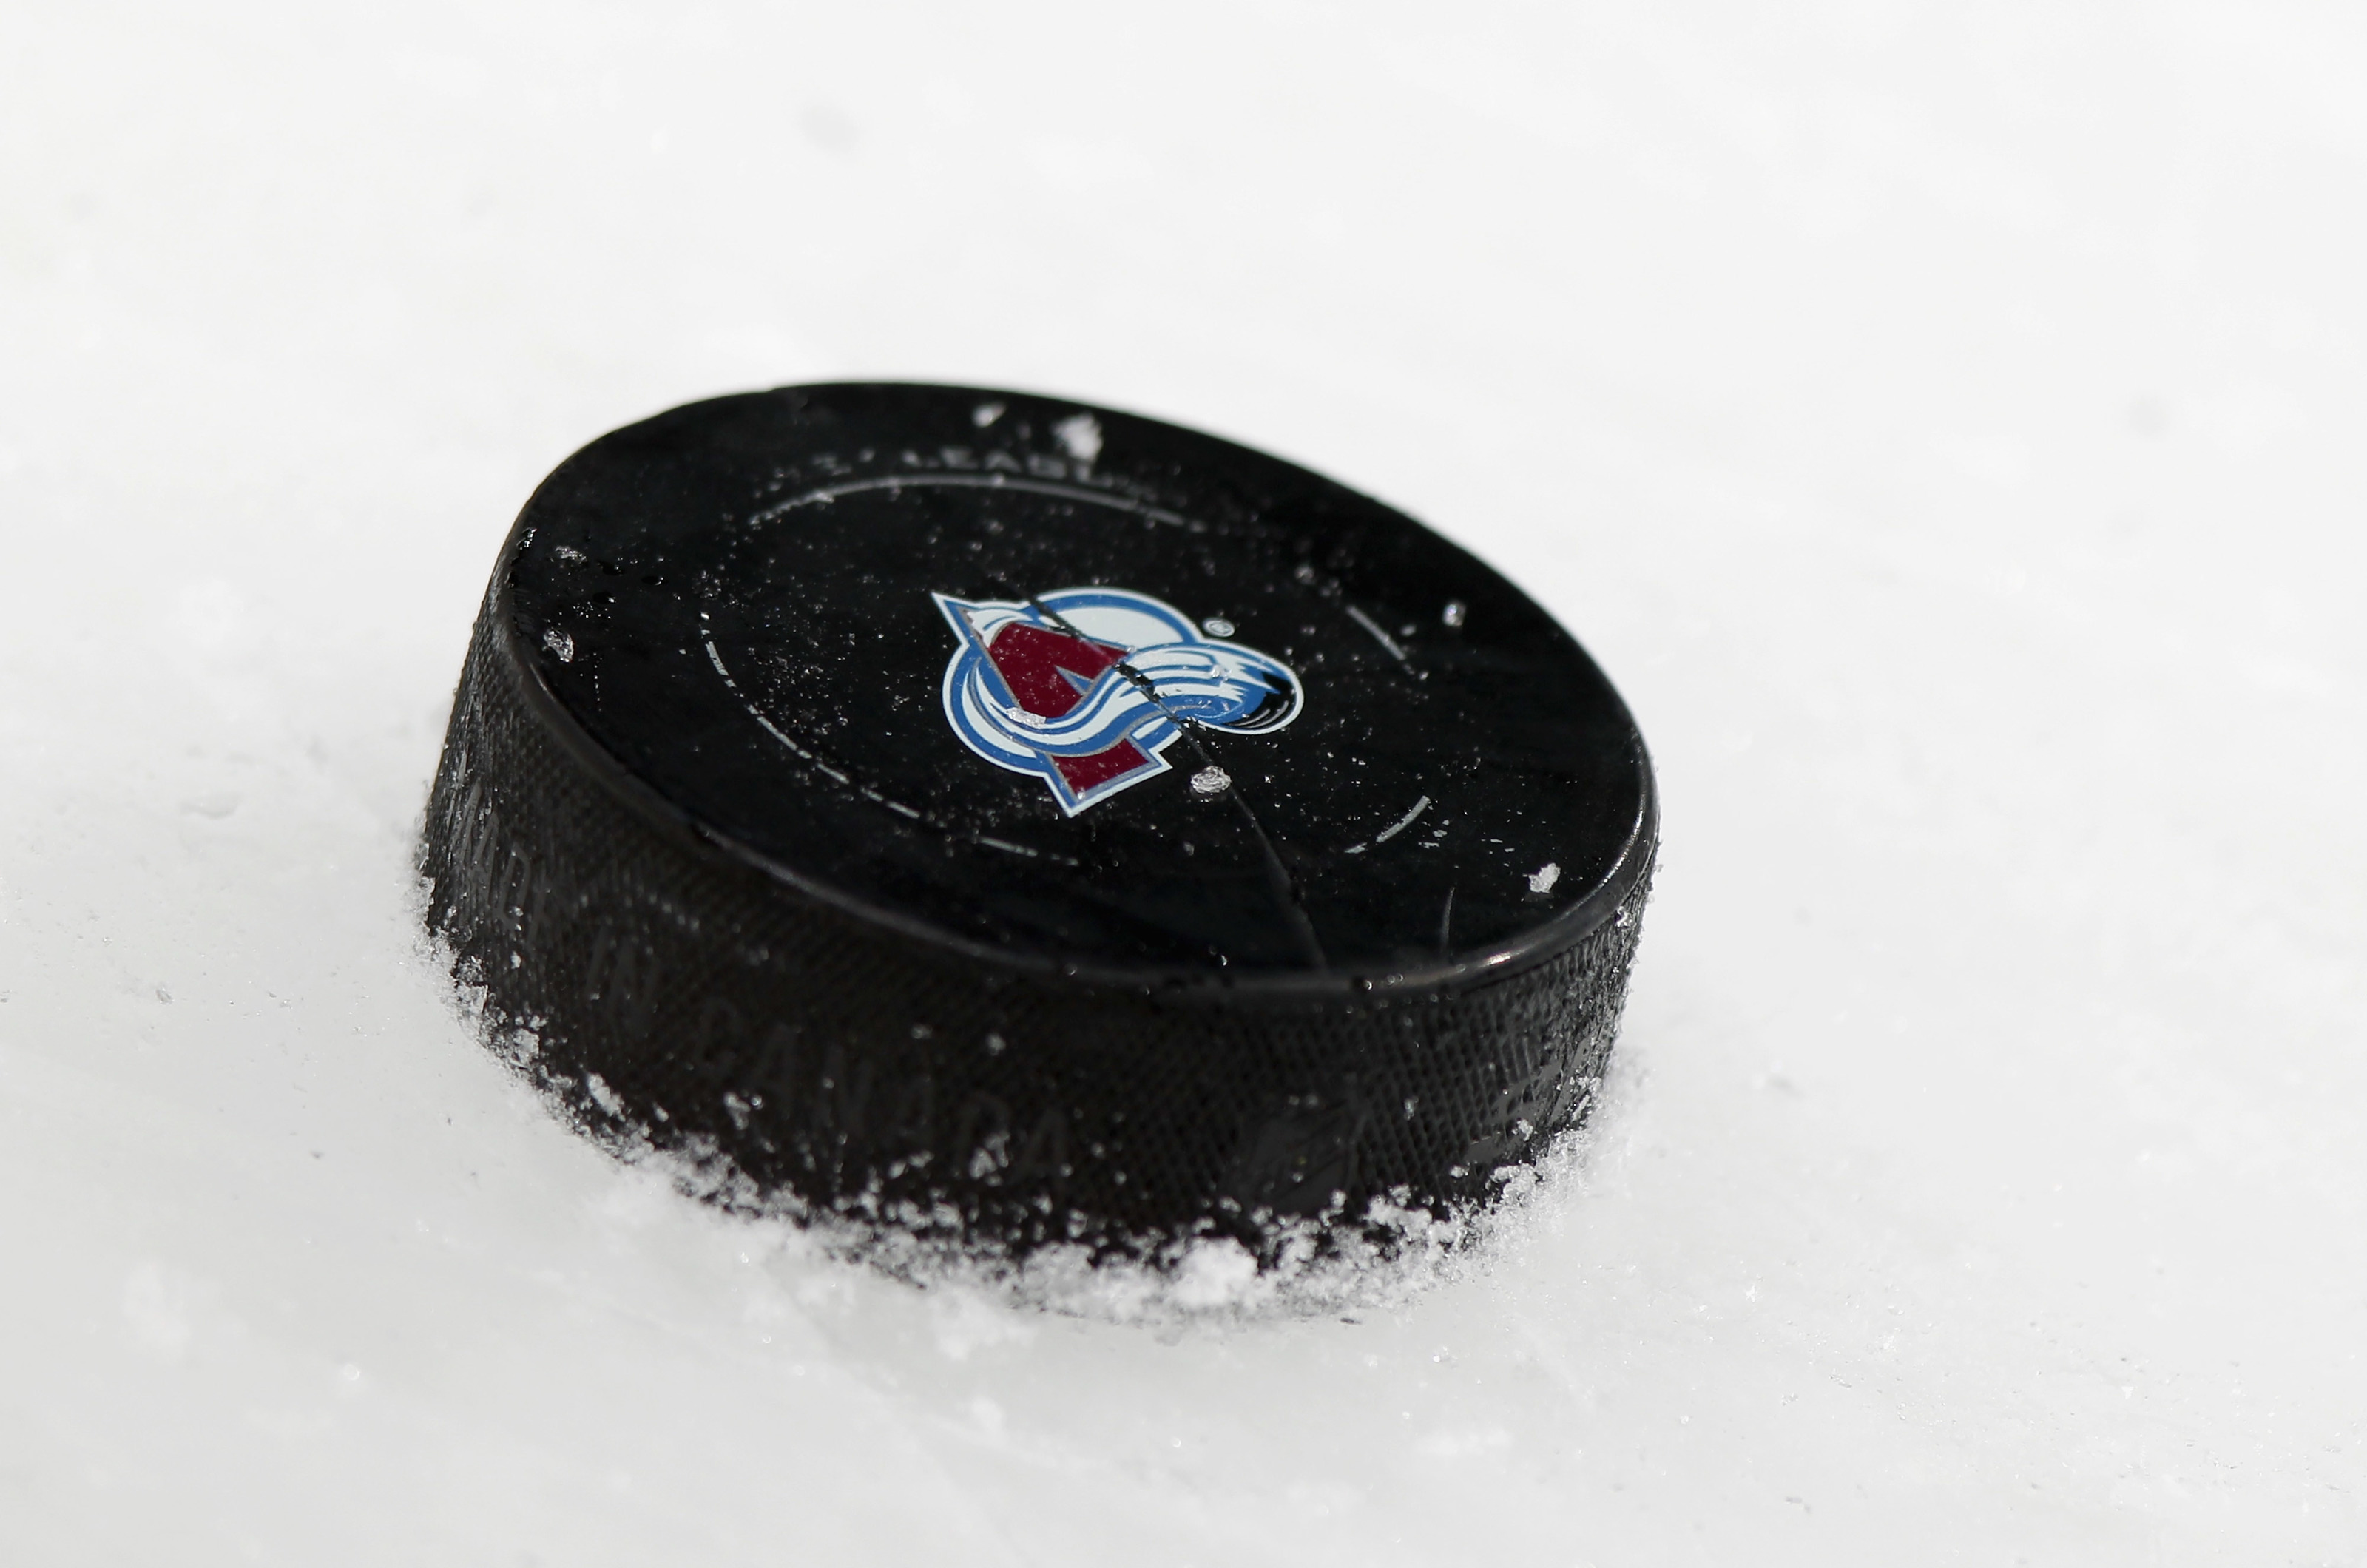 Colorado Avalanche: How COVID-19 Updates Affect the Team